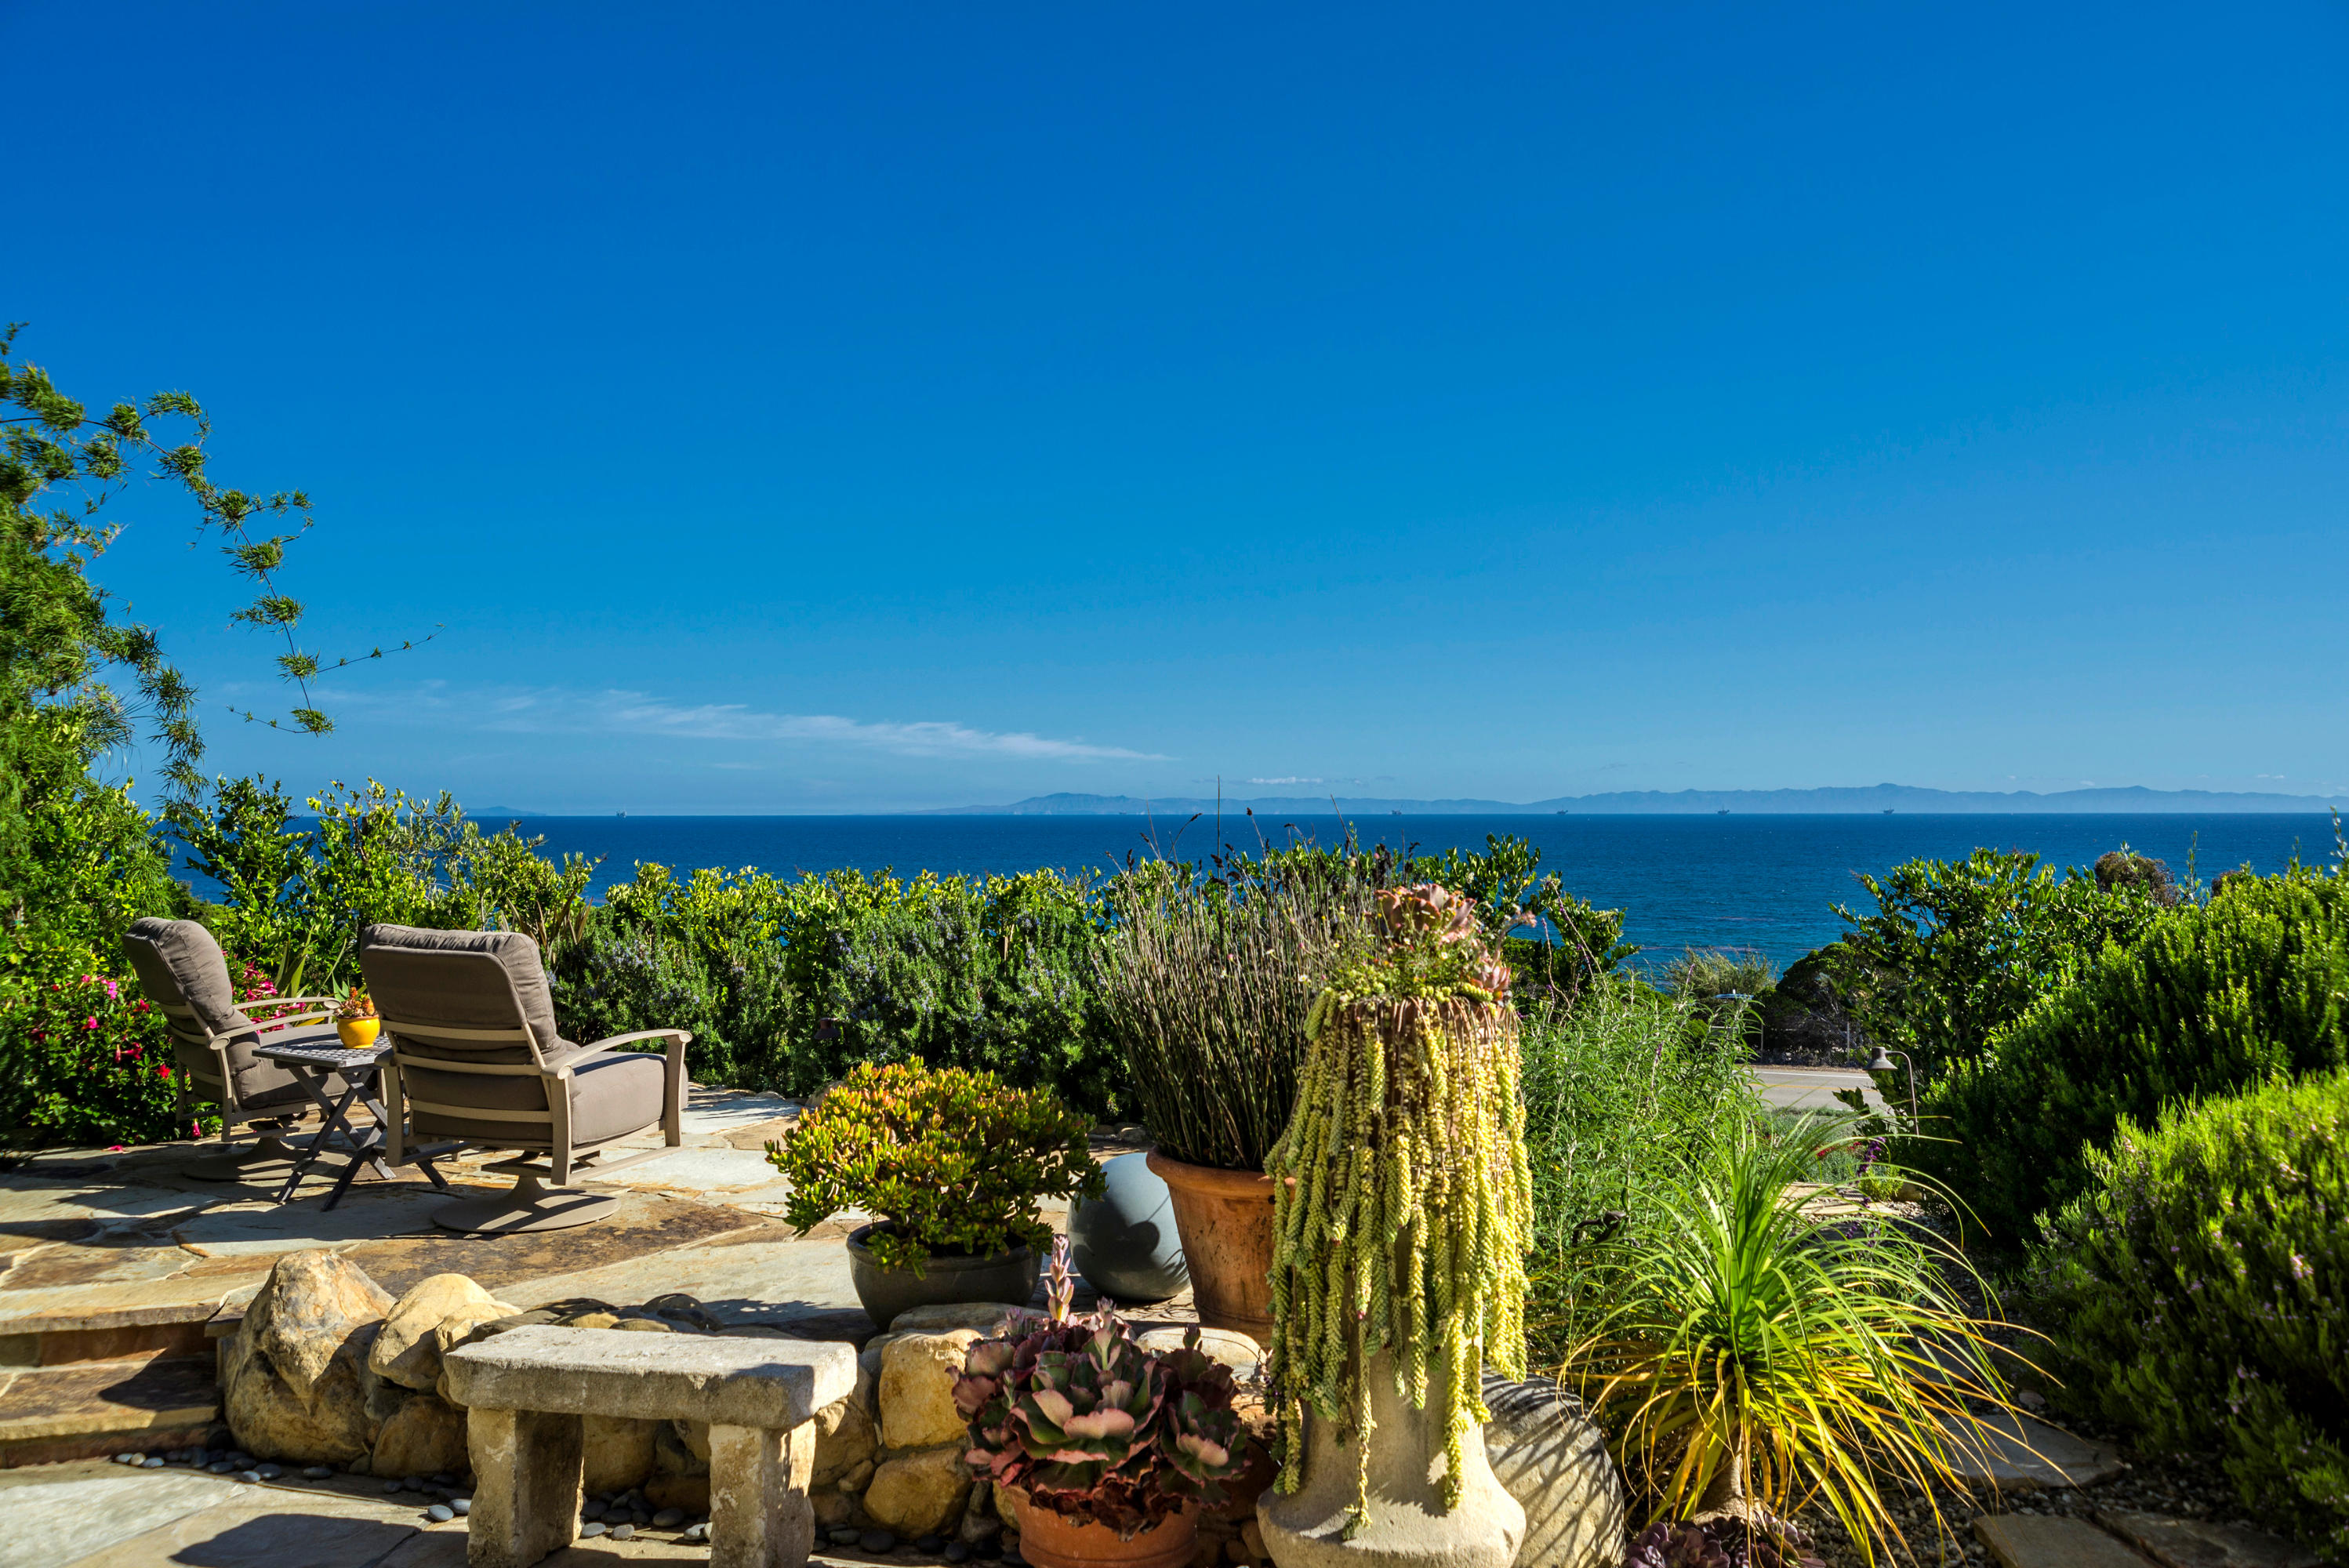 Property photo for 2633 Marguerite Way Summerland, California 93067 - 14-2301